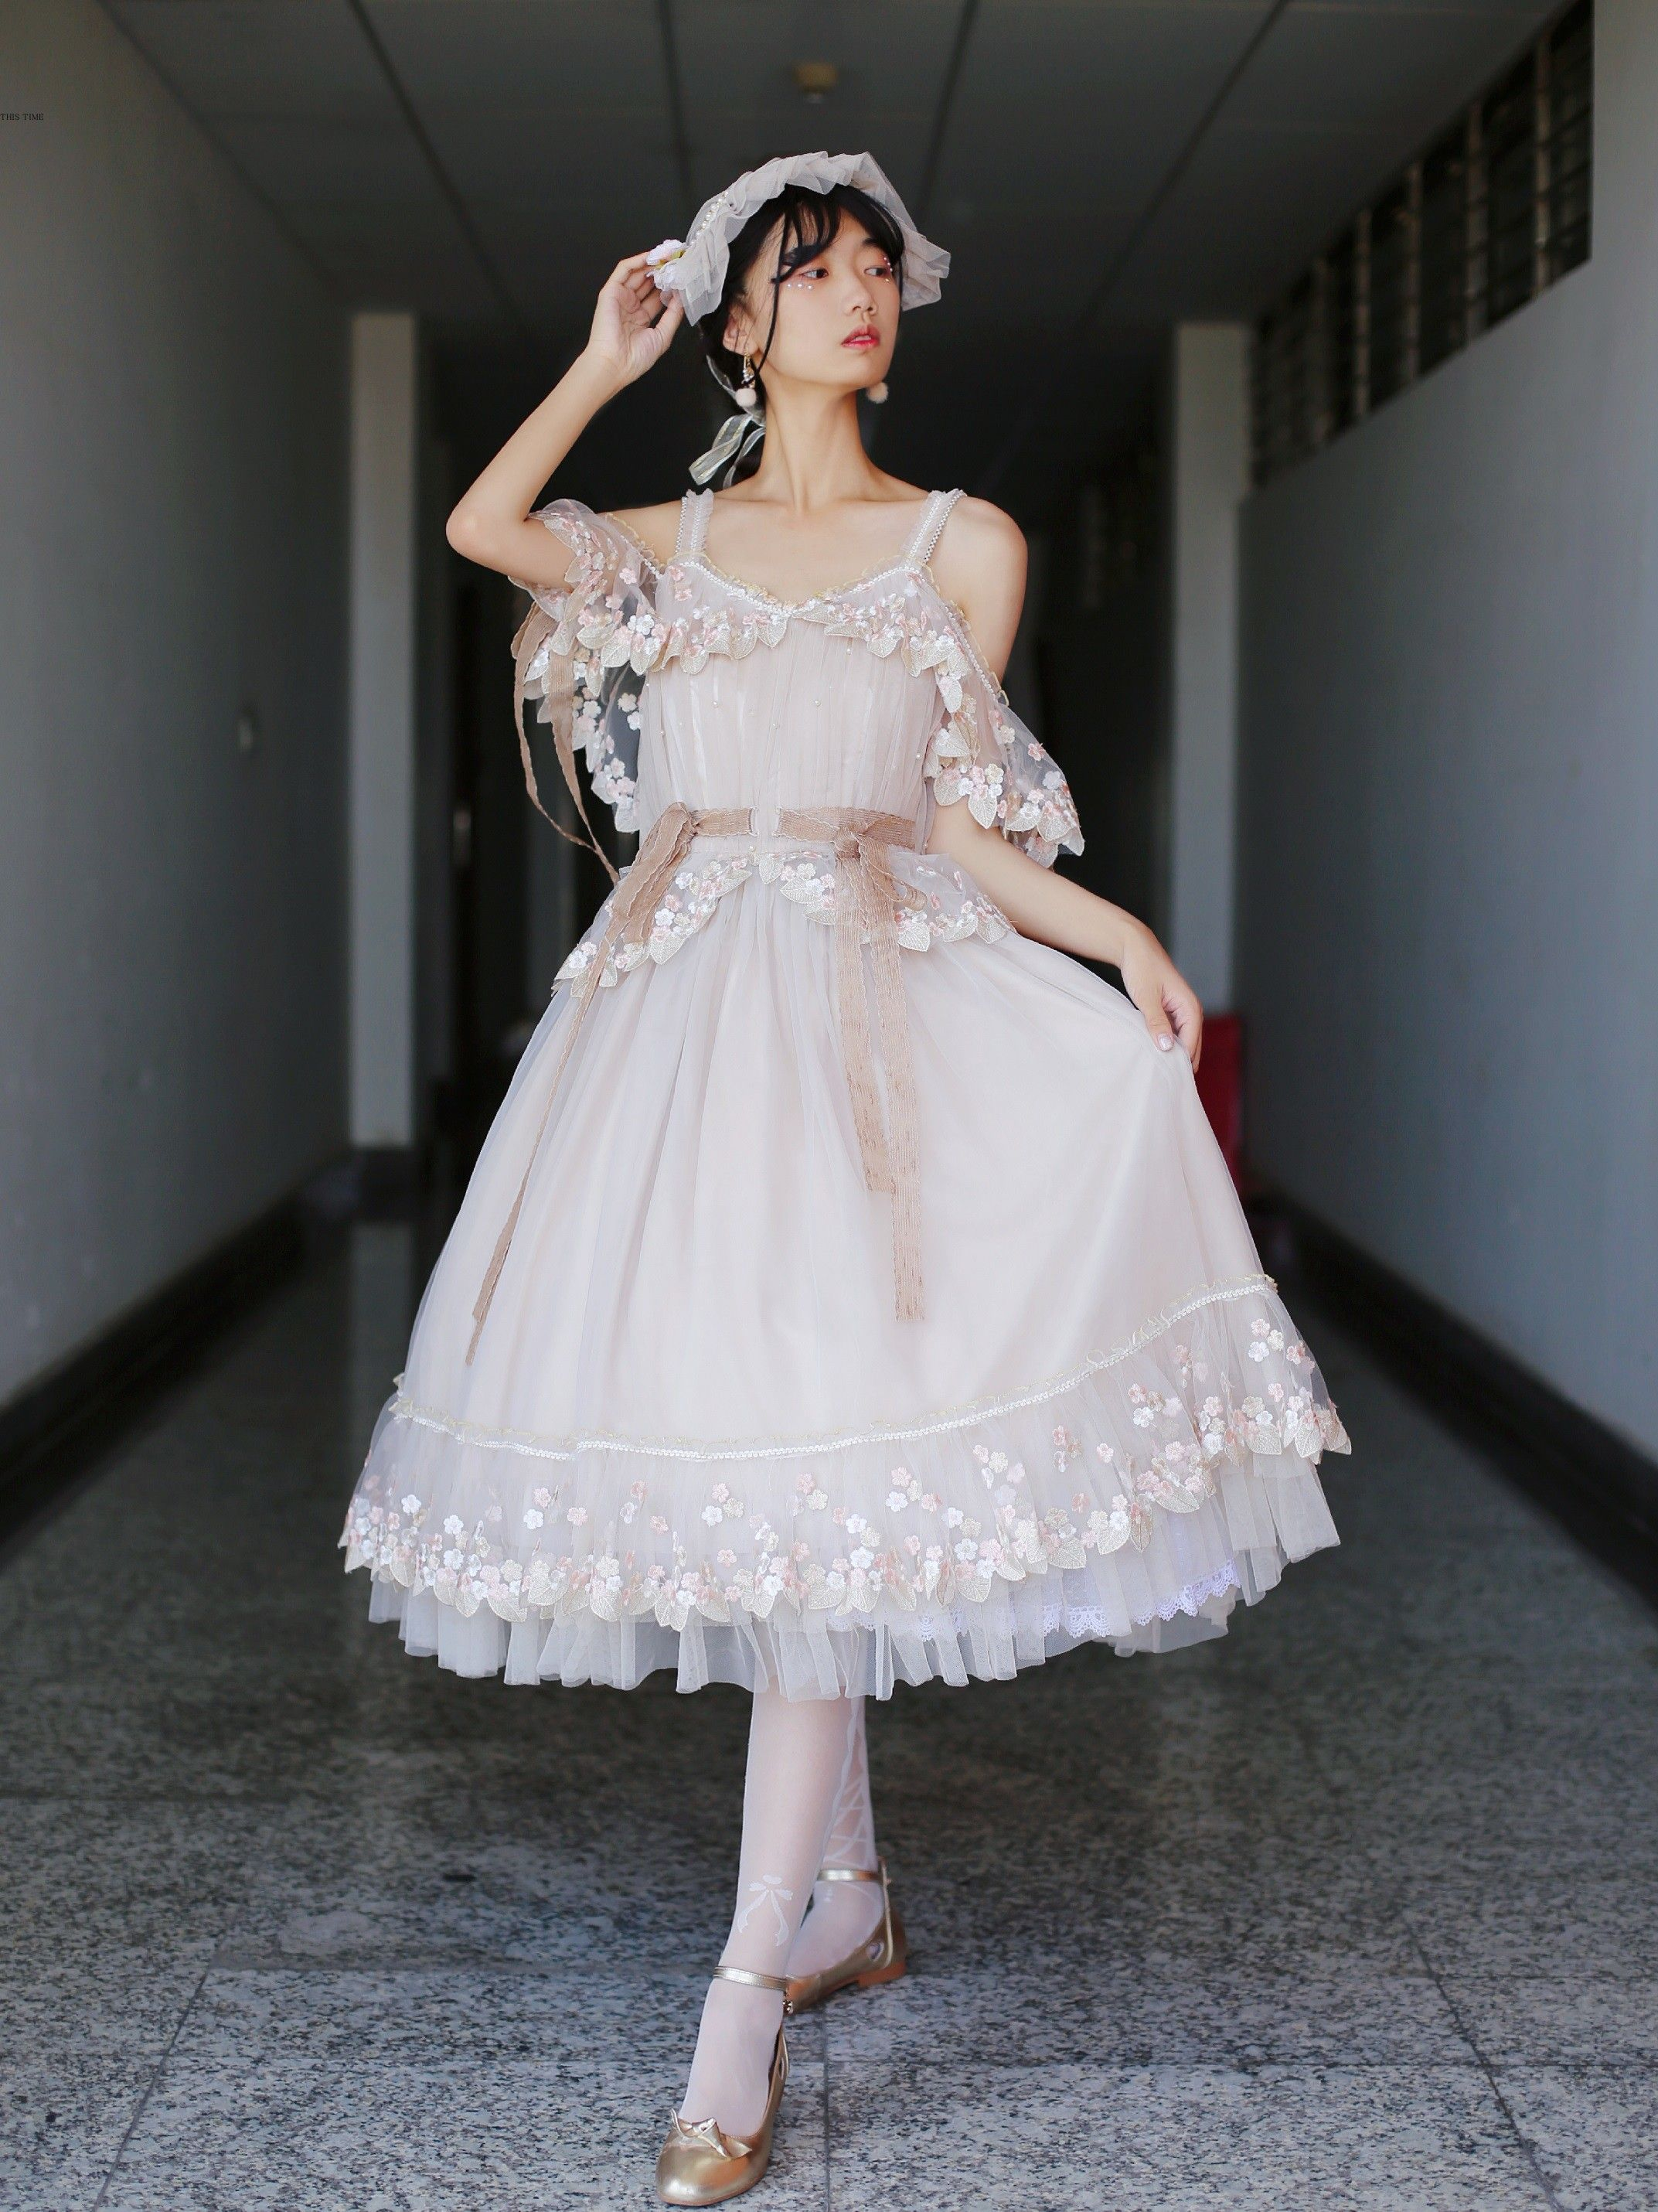 This time the rite of spring vintage classic lolita jumper dress